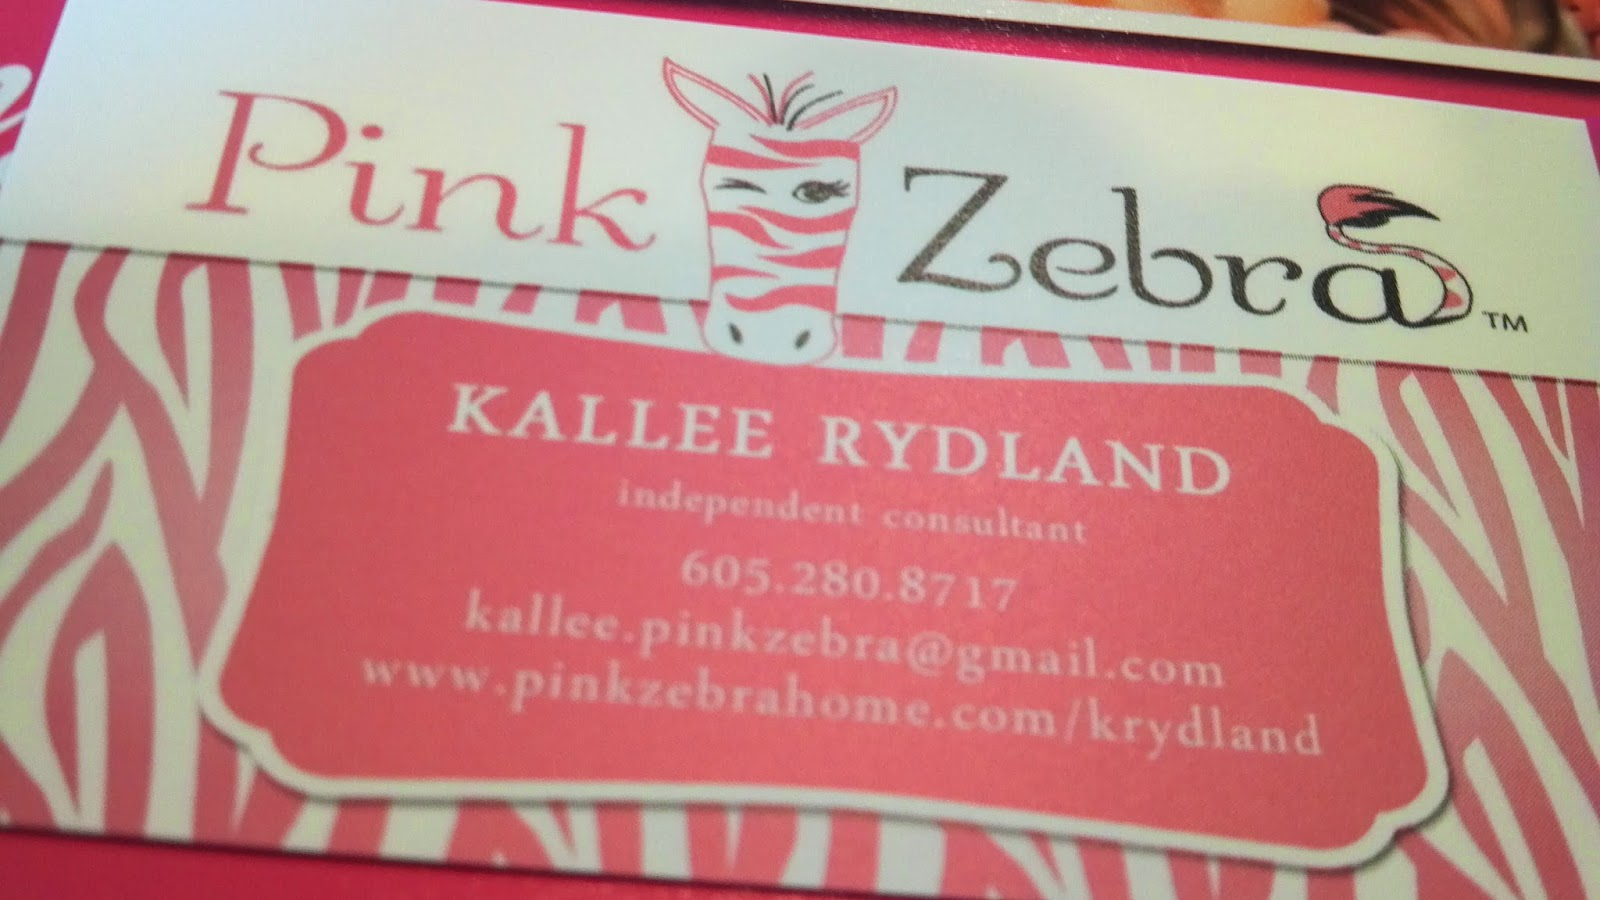 Pink zebra business cards unlimitedgamers kick me a review pink zebra colourmoves